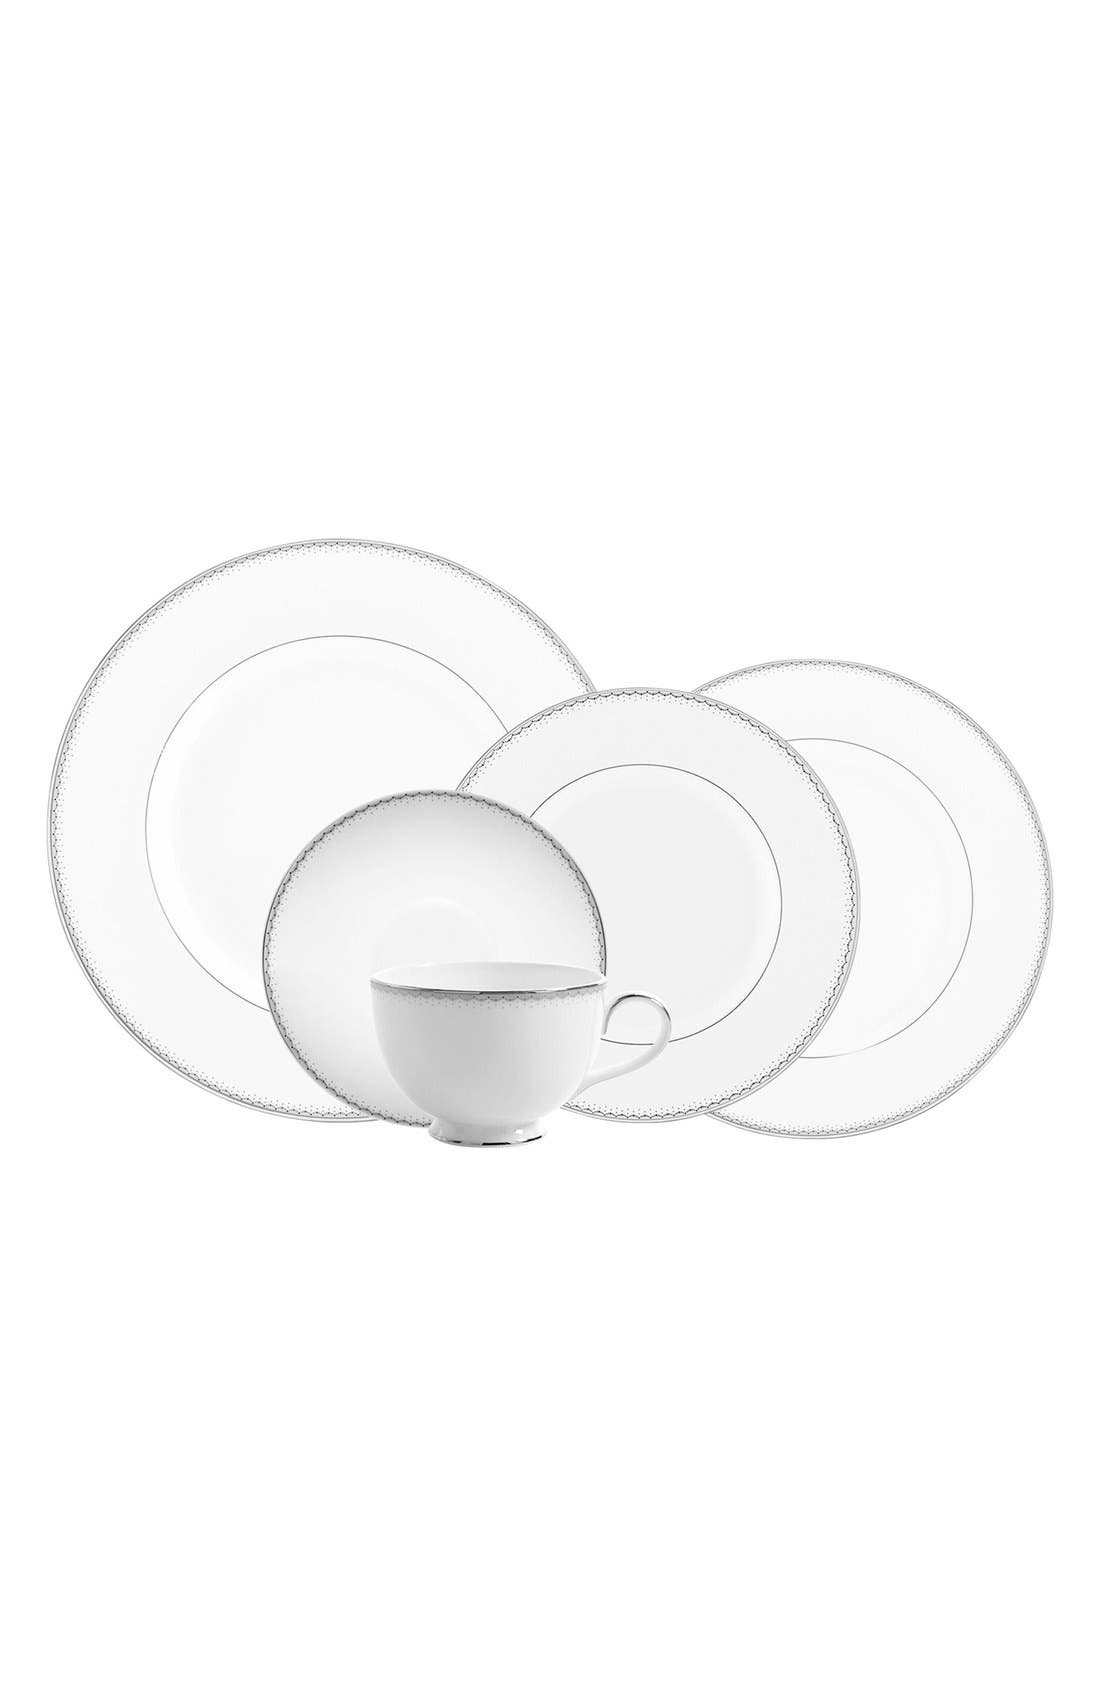 Monique Lhuillier Waterford 'Dentelle' 5-Piece Bone China Dinnerware Place Setting